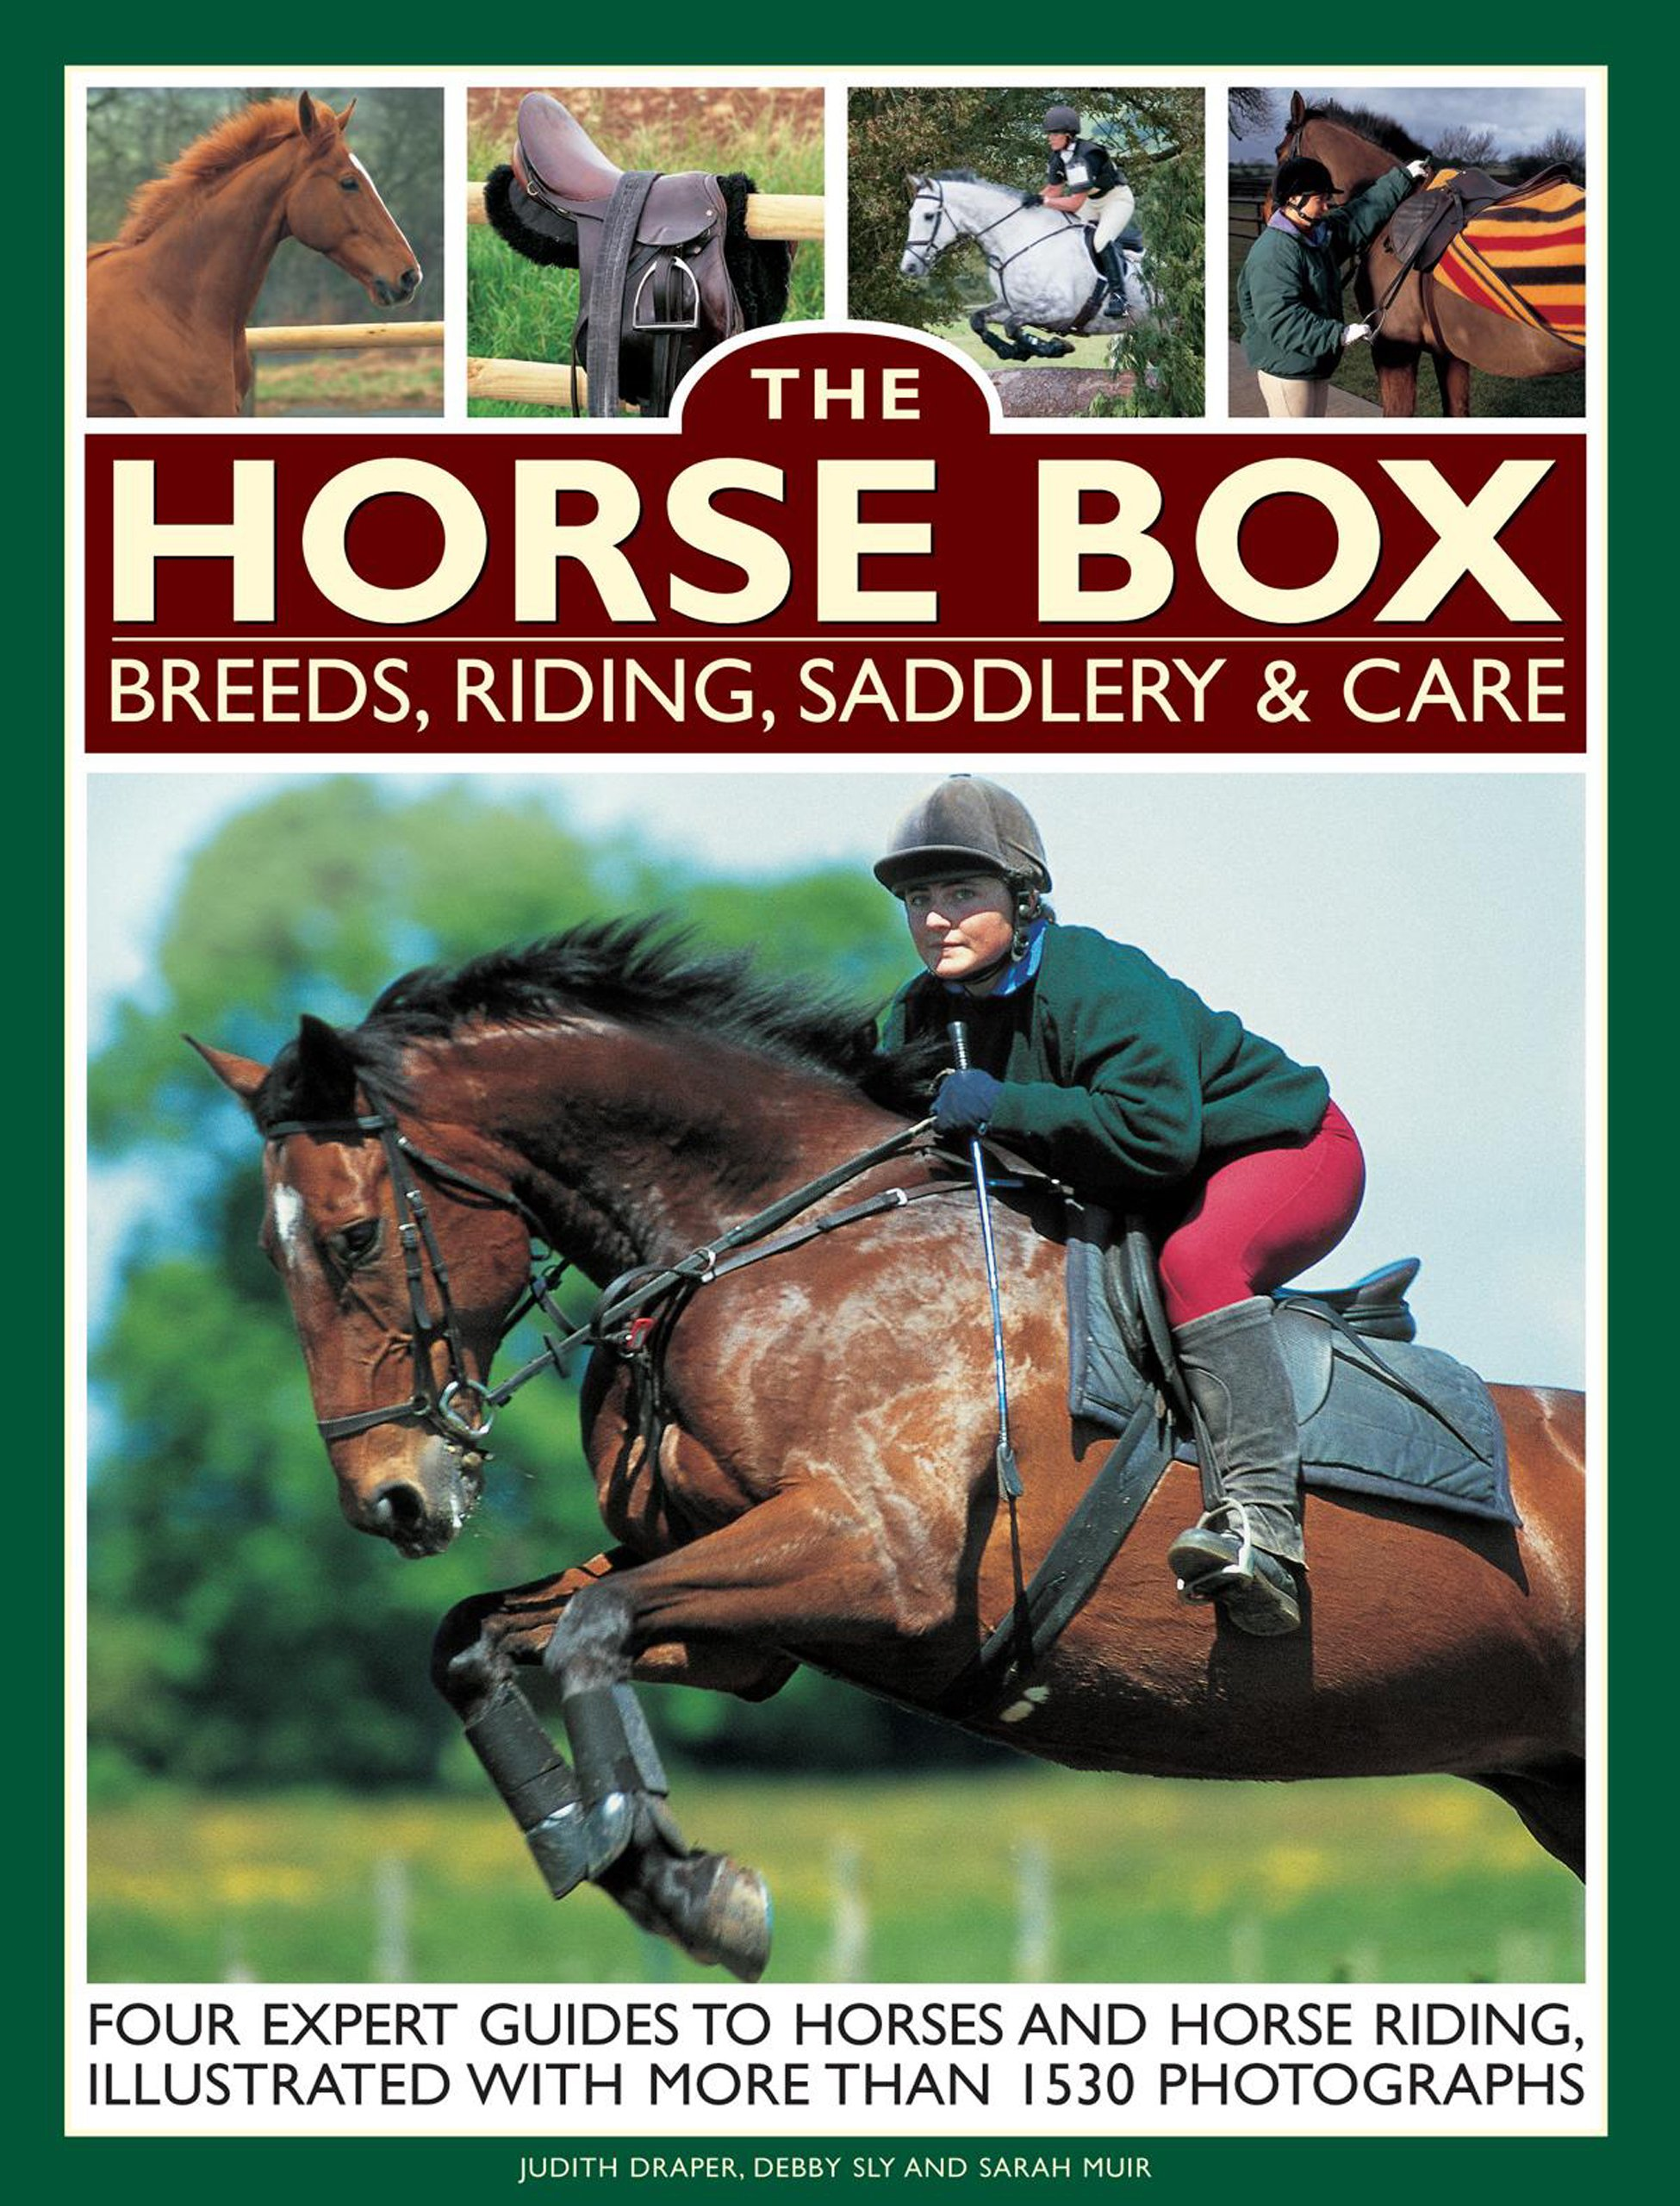 The Horse Box: Breeds, Riding, Saddlery & Care: Four Expert Guides To Horses And Horse Riding, Illustrated With More Than 1530 Photographs ebook